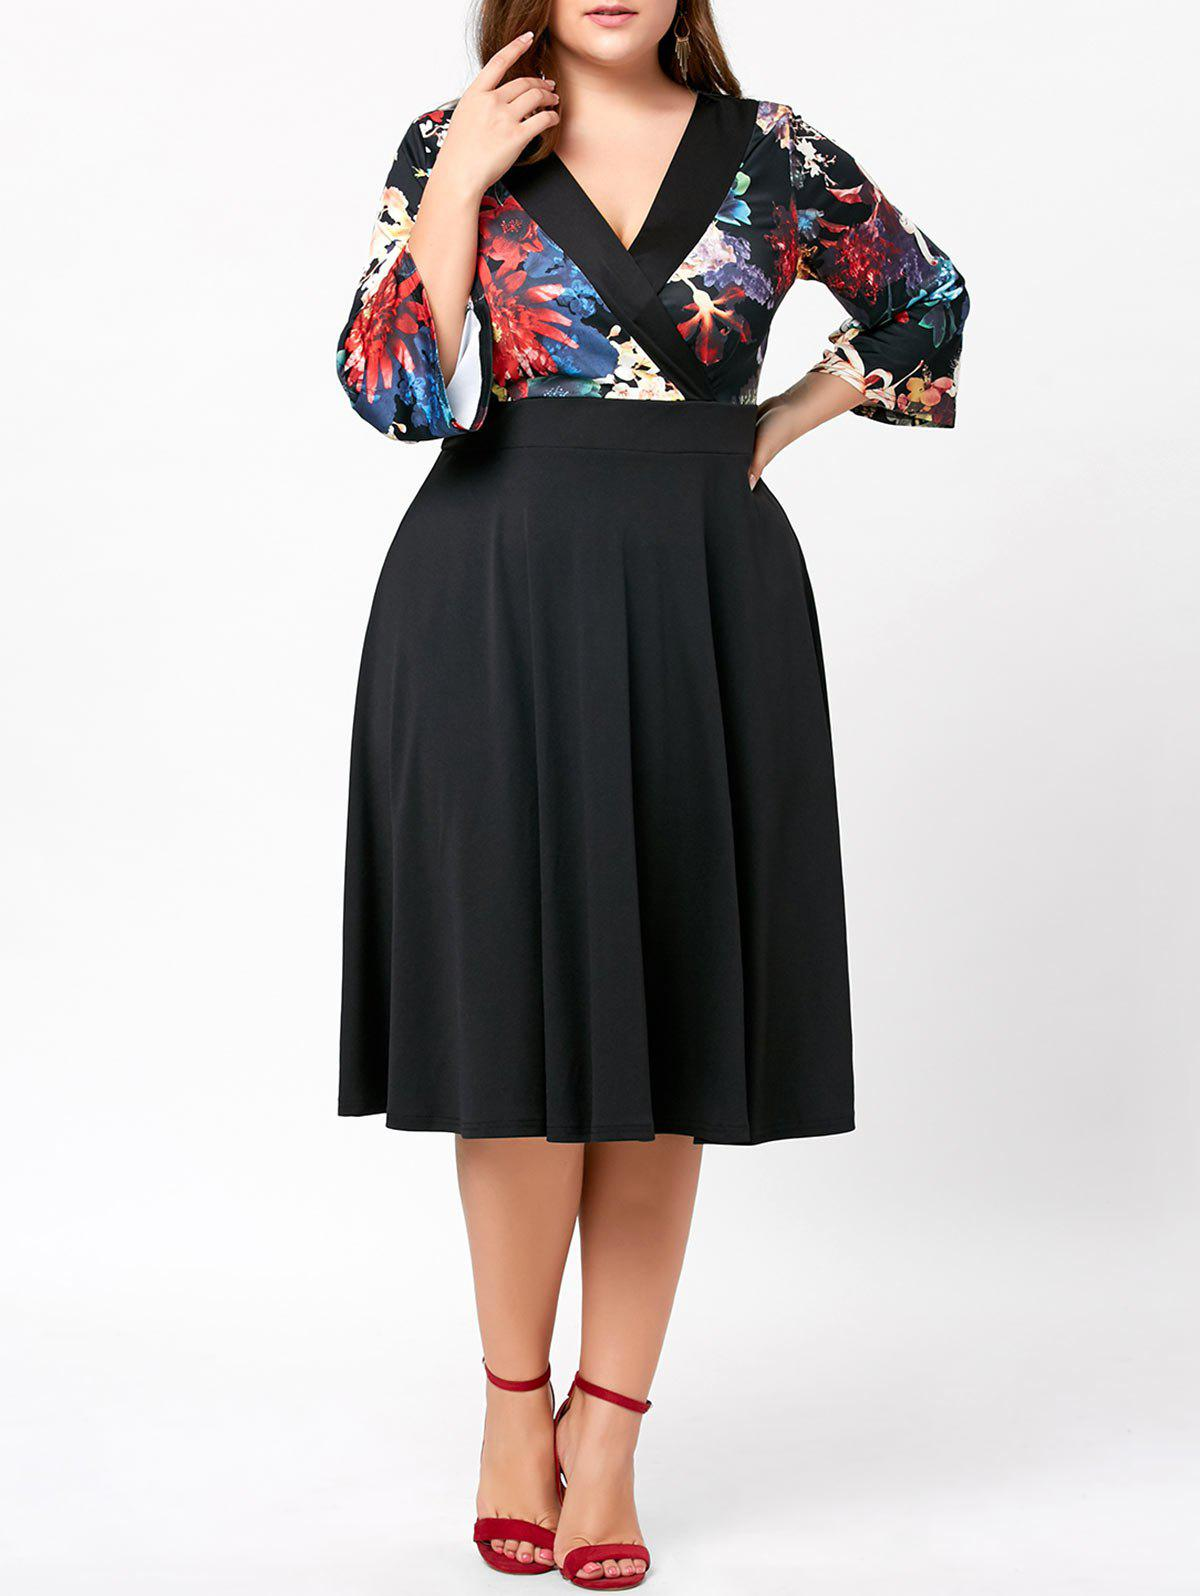 Plus Size Floral Midi DressWOMEN<br><br>Size: 4XL; Color: BLACK; Style: Brief; Material: Polyester,Spandex; Silhouette: A-Line; Dresses Length: Mid-Calf; Neckline: V-Neck; Sleeve Length: 3/4 Length Sleeves; Pattern Type: Floral; With Belt: No; Season: Fall,Spring,Summer; Weight: 0.4700kg; Package Contents: 1 x Dress;